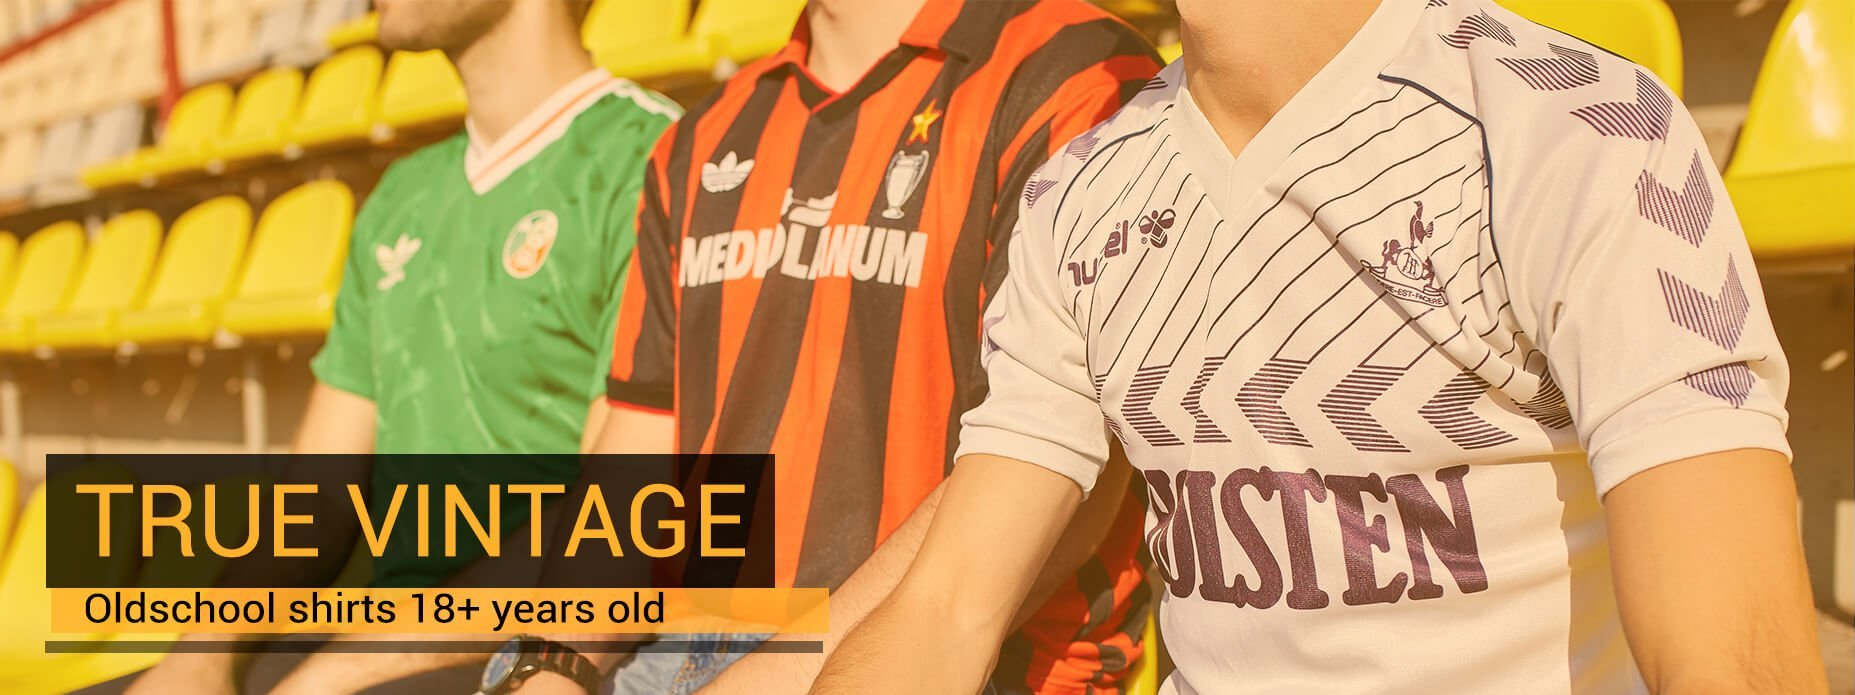 Vintagesportsfashion banner